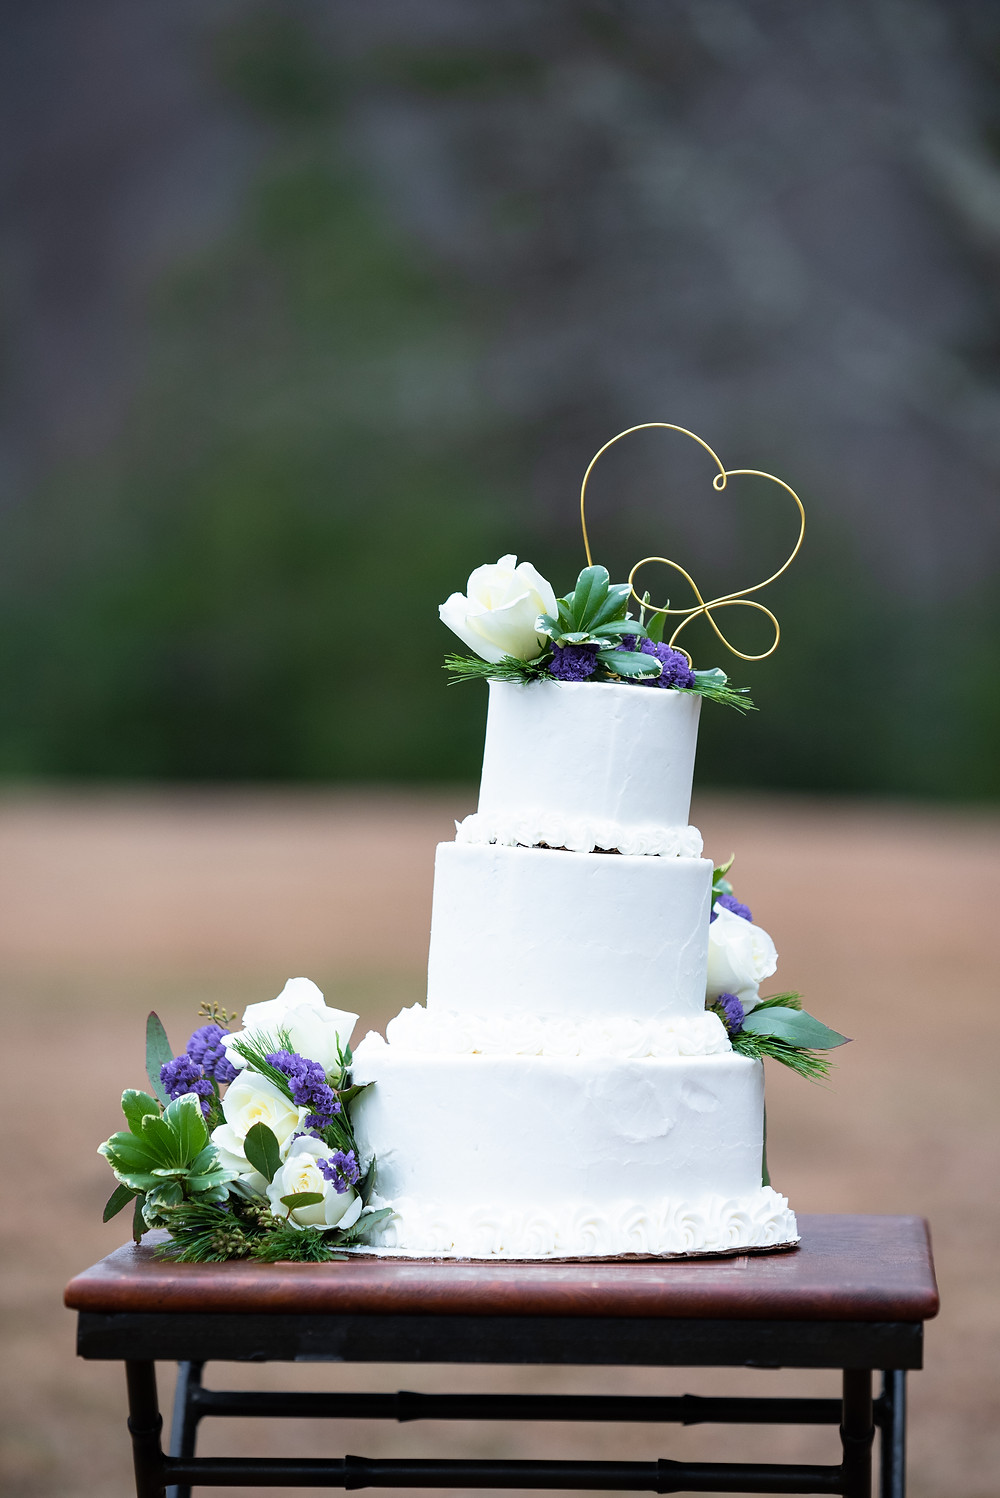 Three tiered wedding cake with white roses and metal heart on top